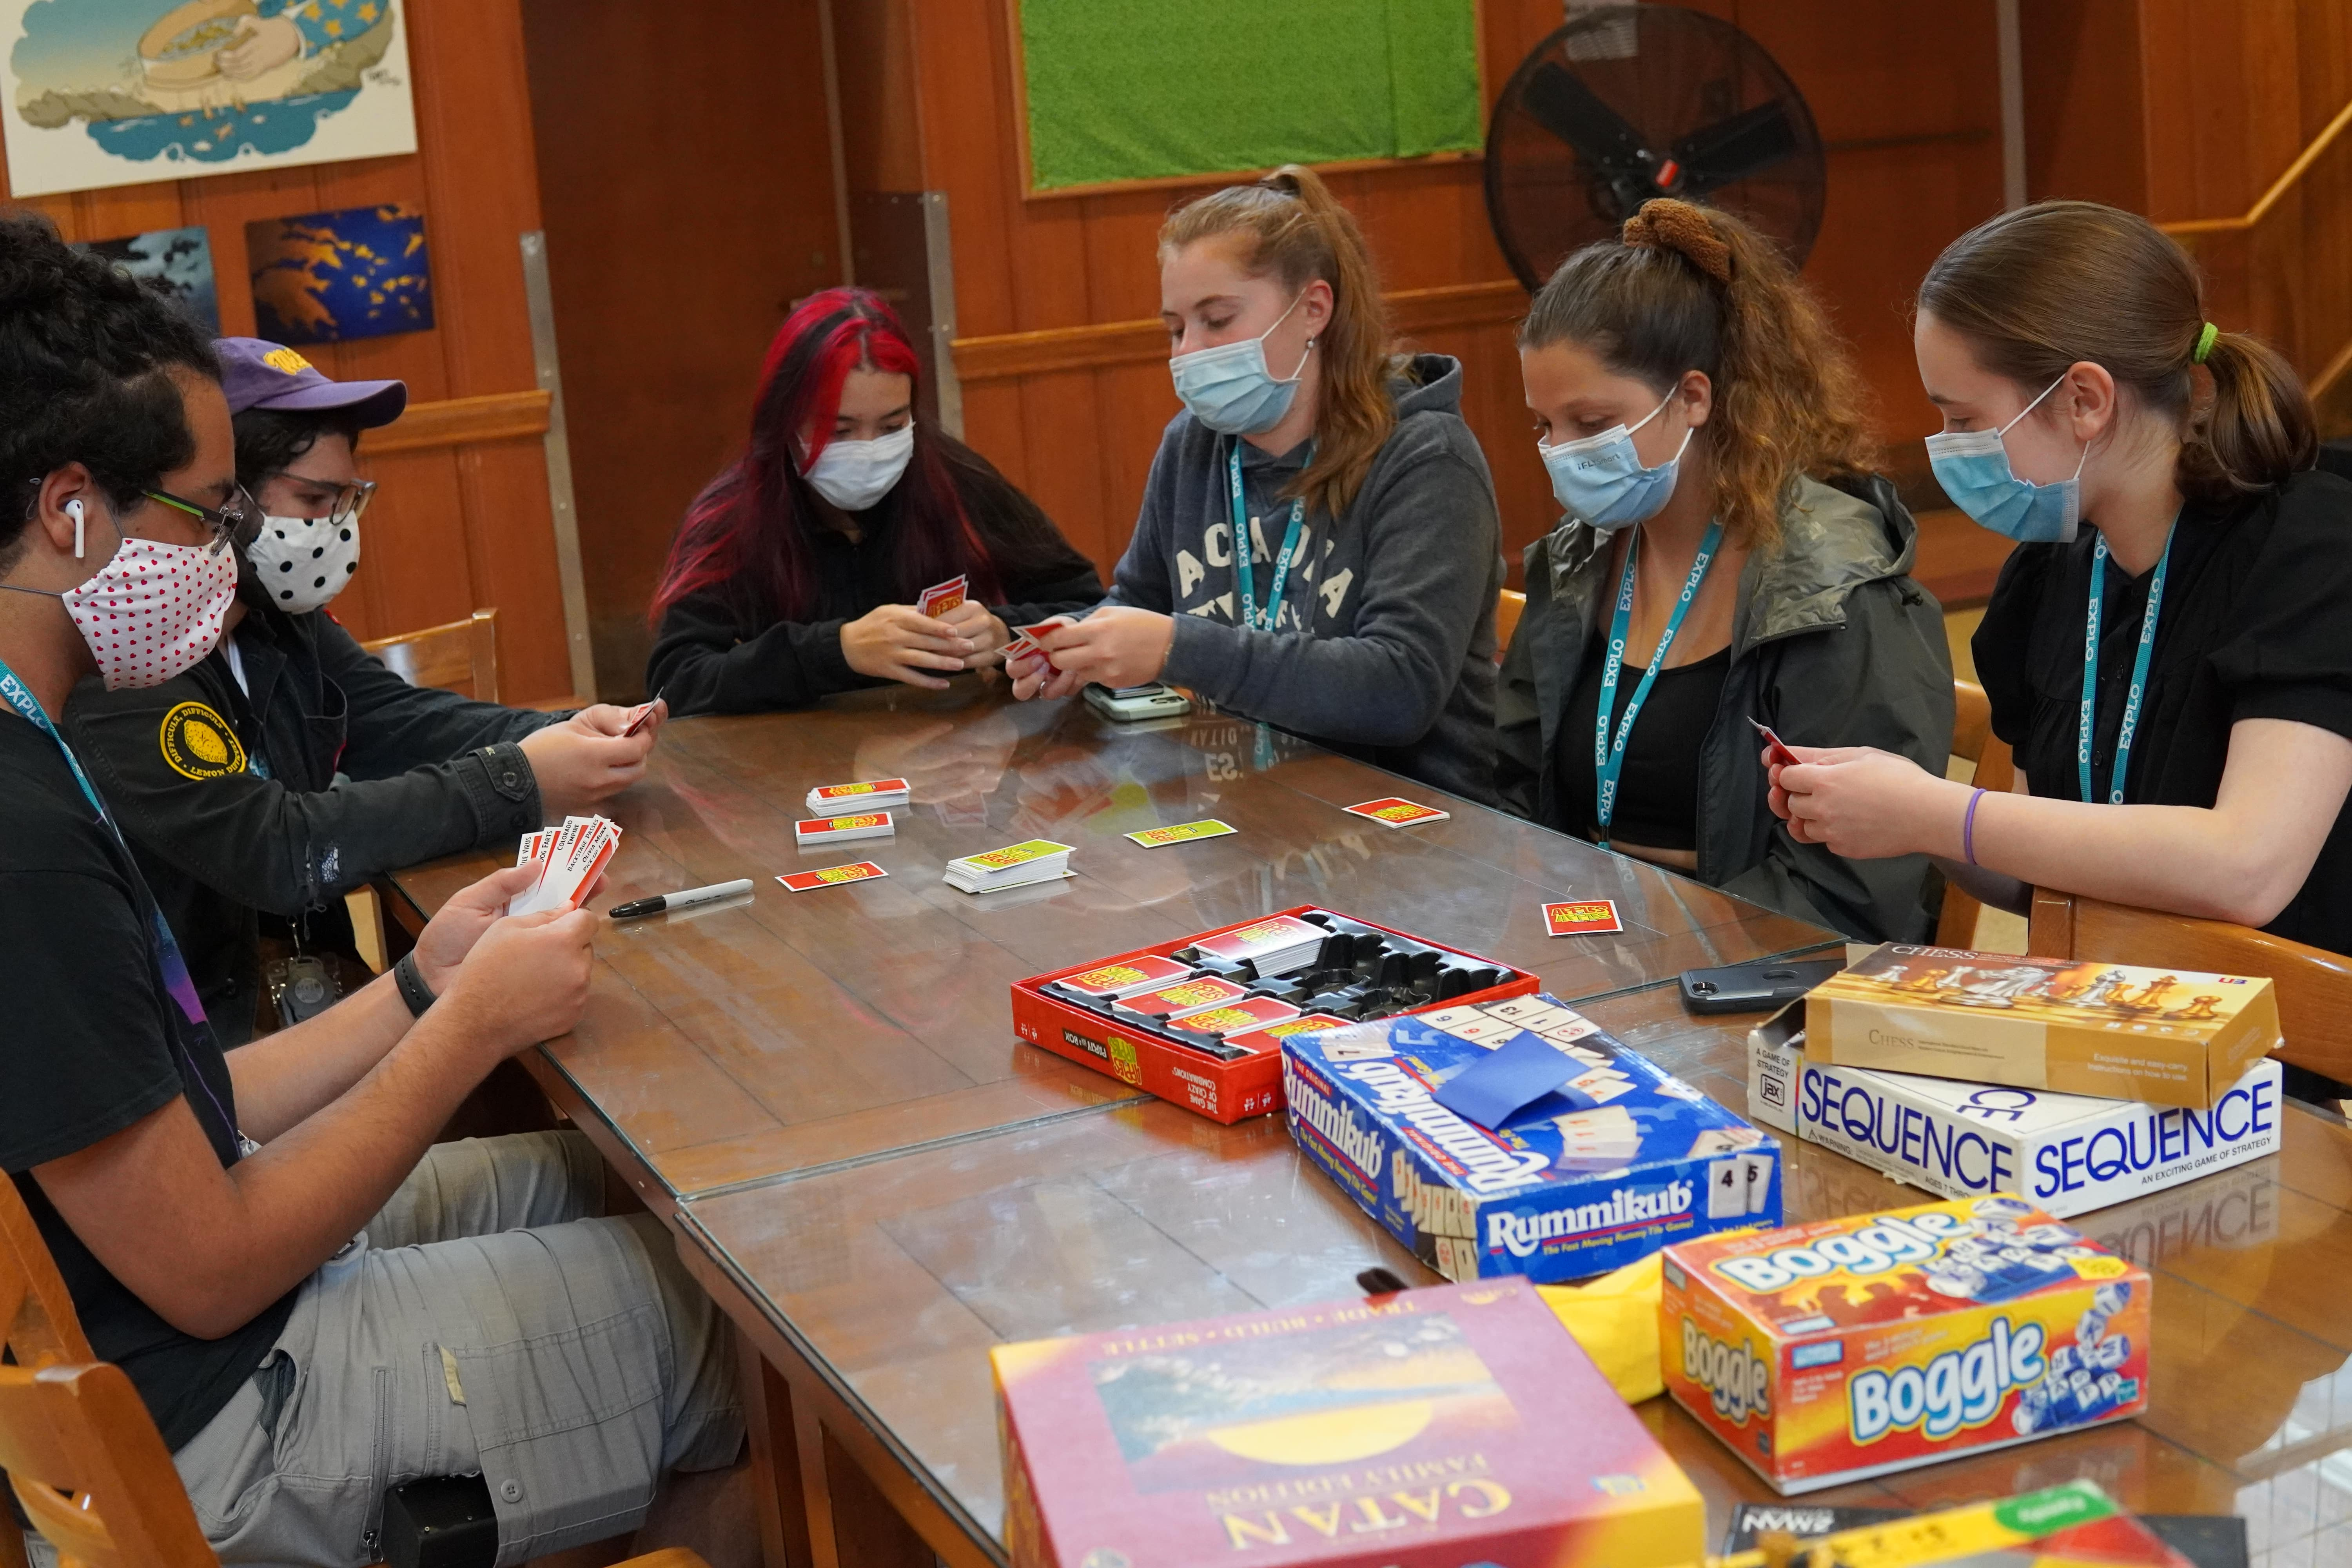 Students gather around a table and begin looking at their Apples to Apples cards.